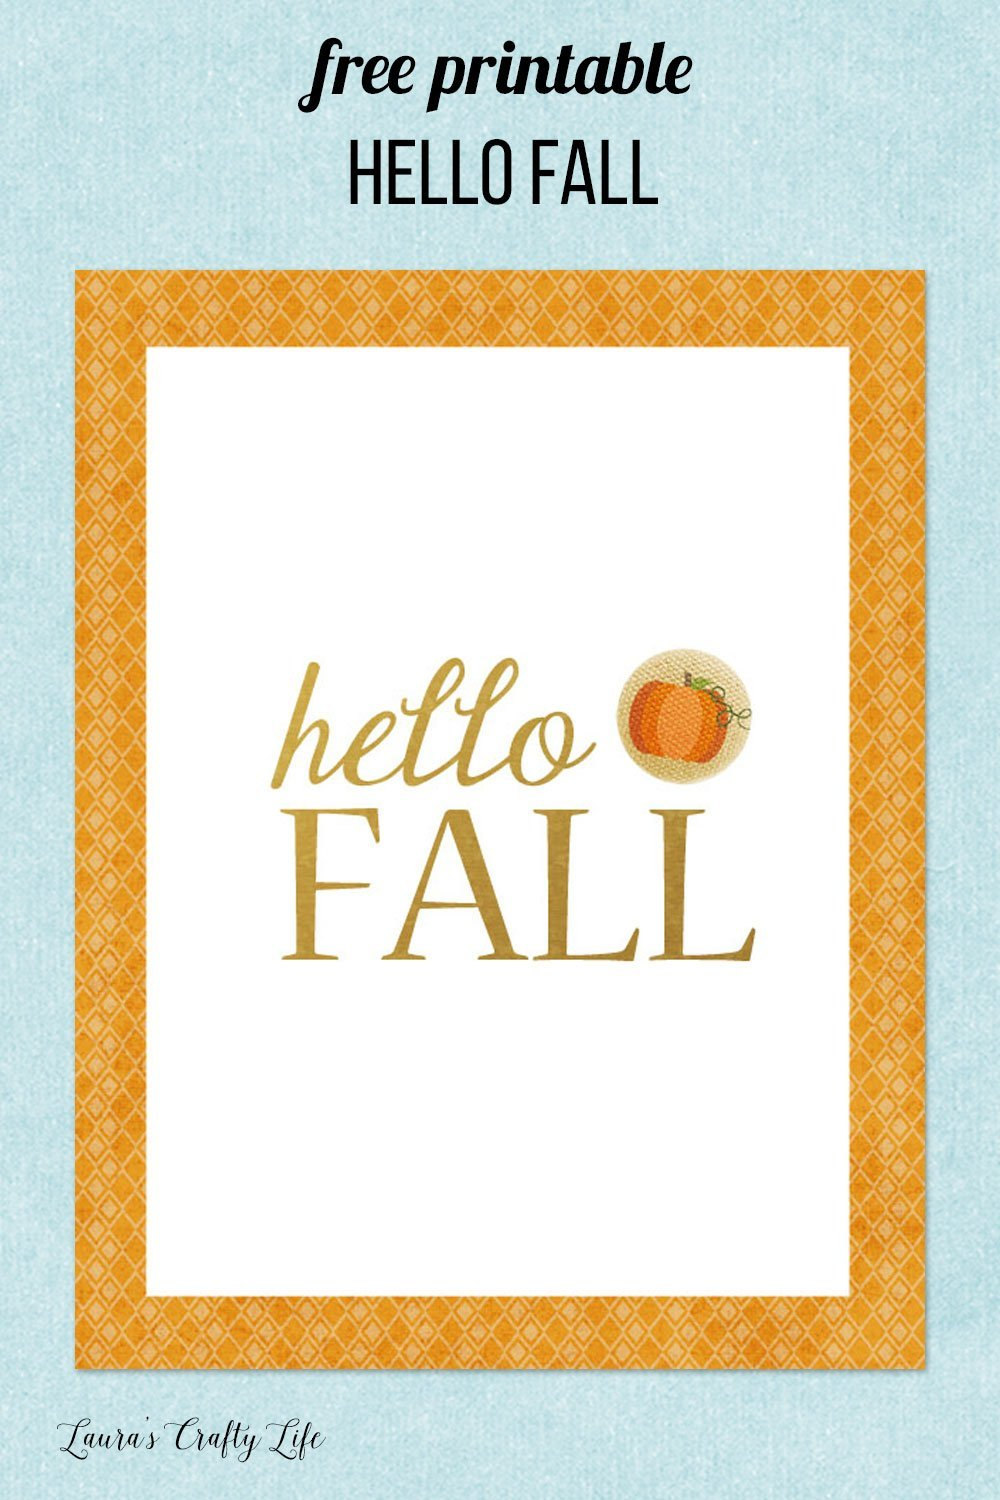 free printable art hello fall